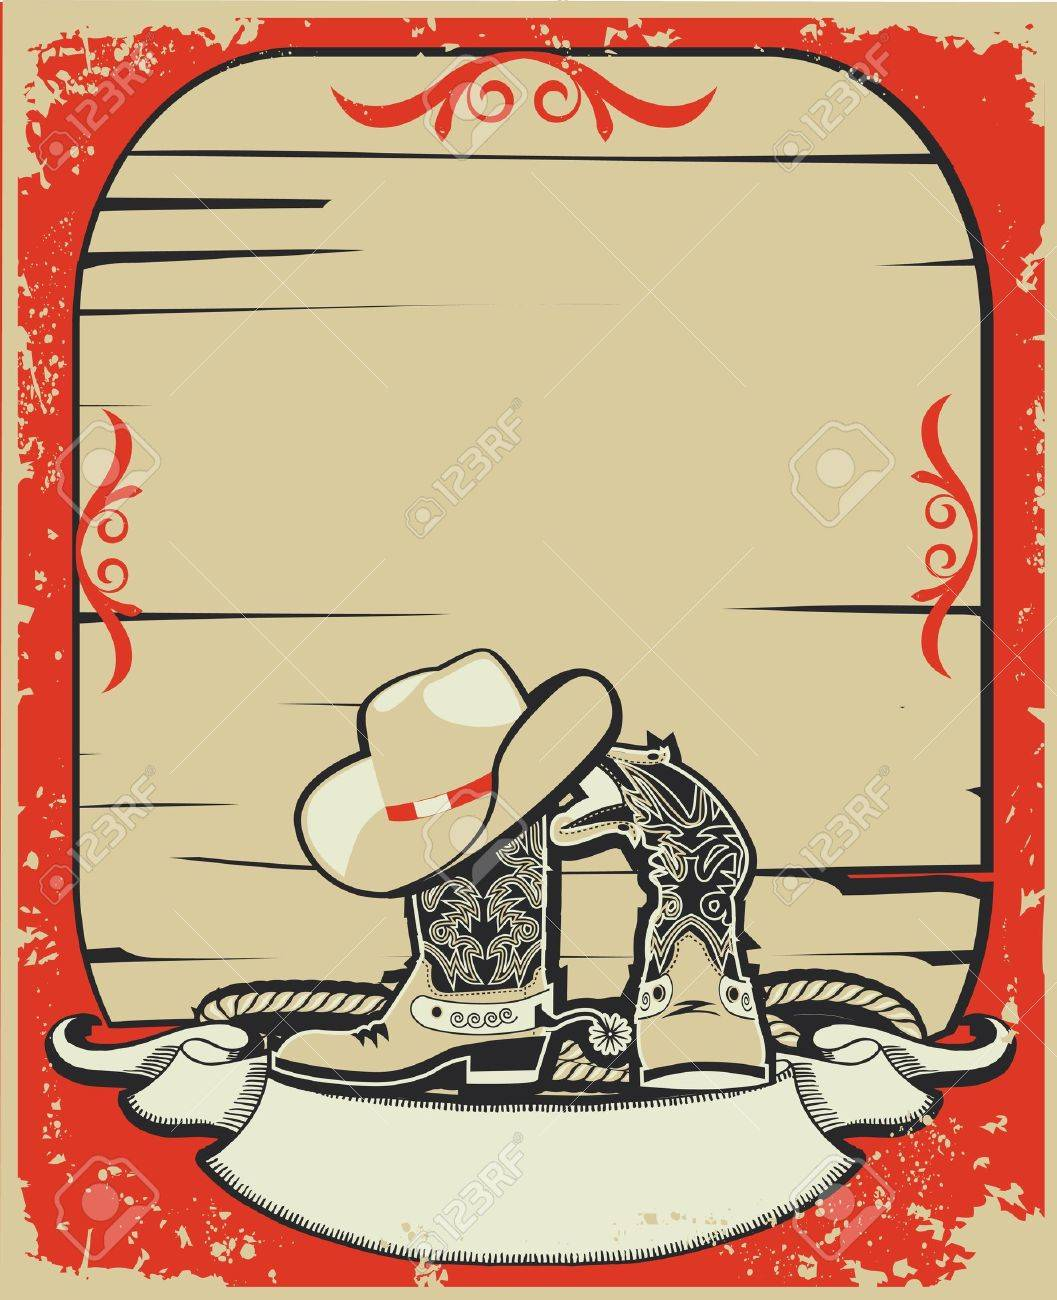 Cowboy elements.Red background with grunge elements decorationl .Retro image Stock Vector - 10633589